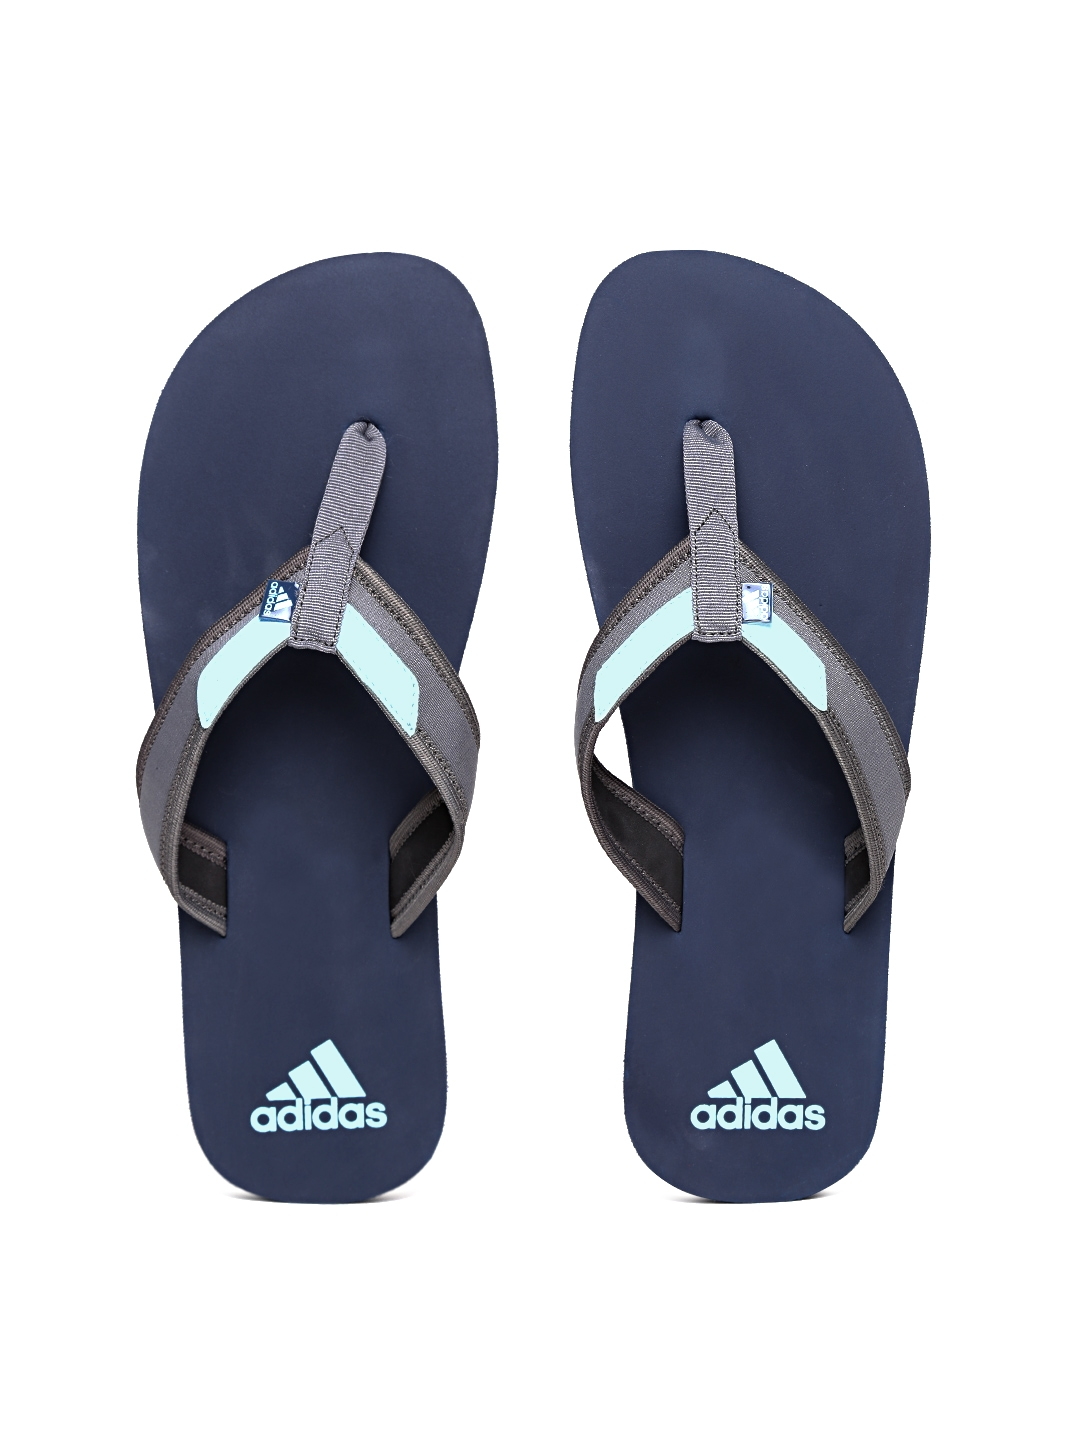 67ce3516b52f Buy ADIDAS Men Grey   Navy ADIRIO Attack 2 Flip Flops - Flip Flops ...